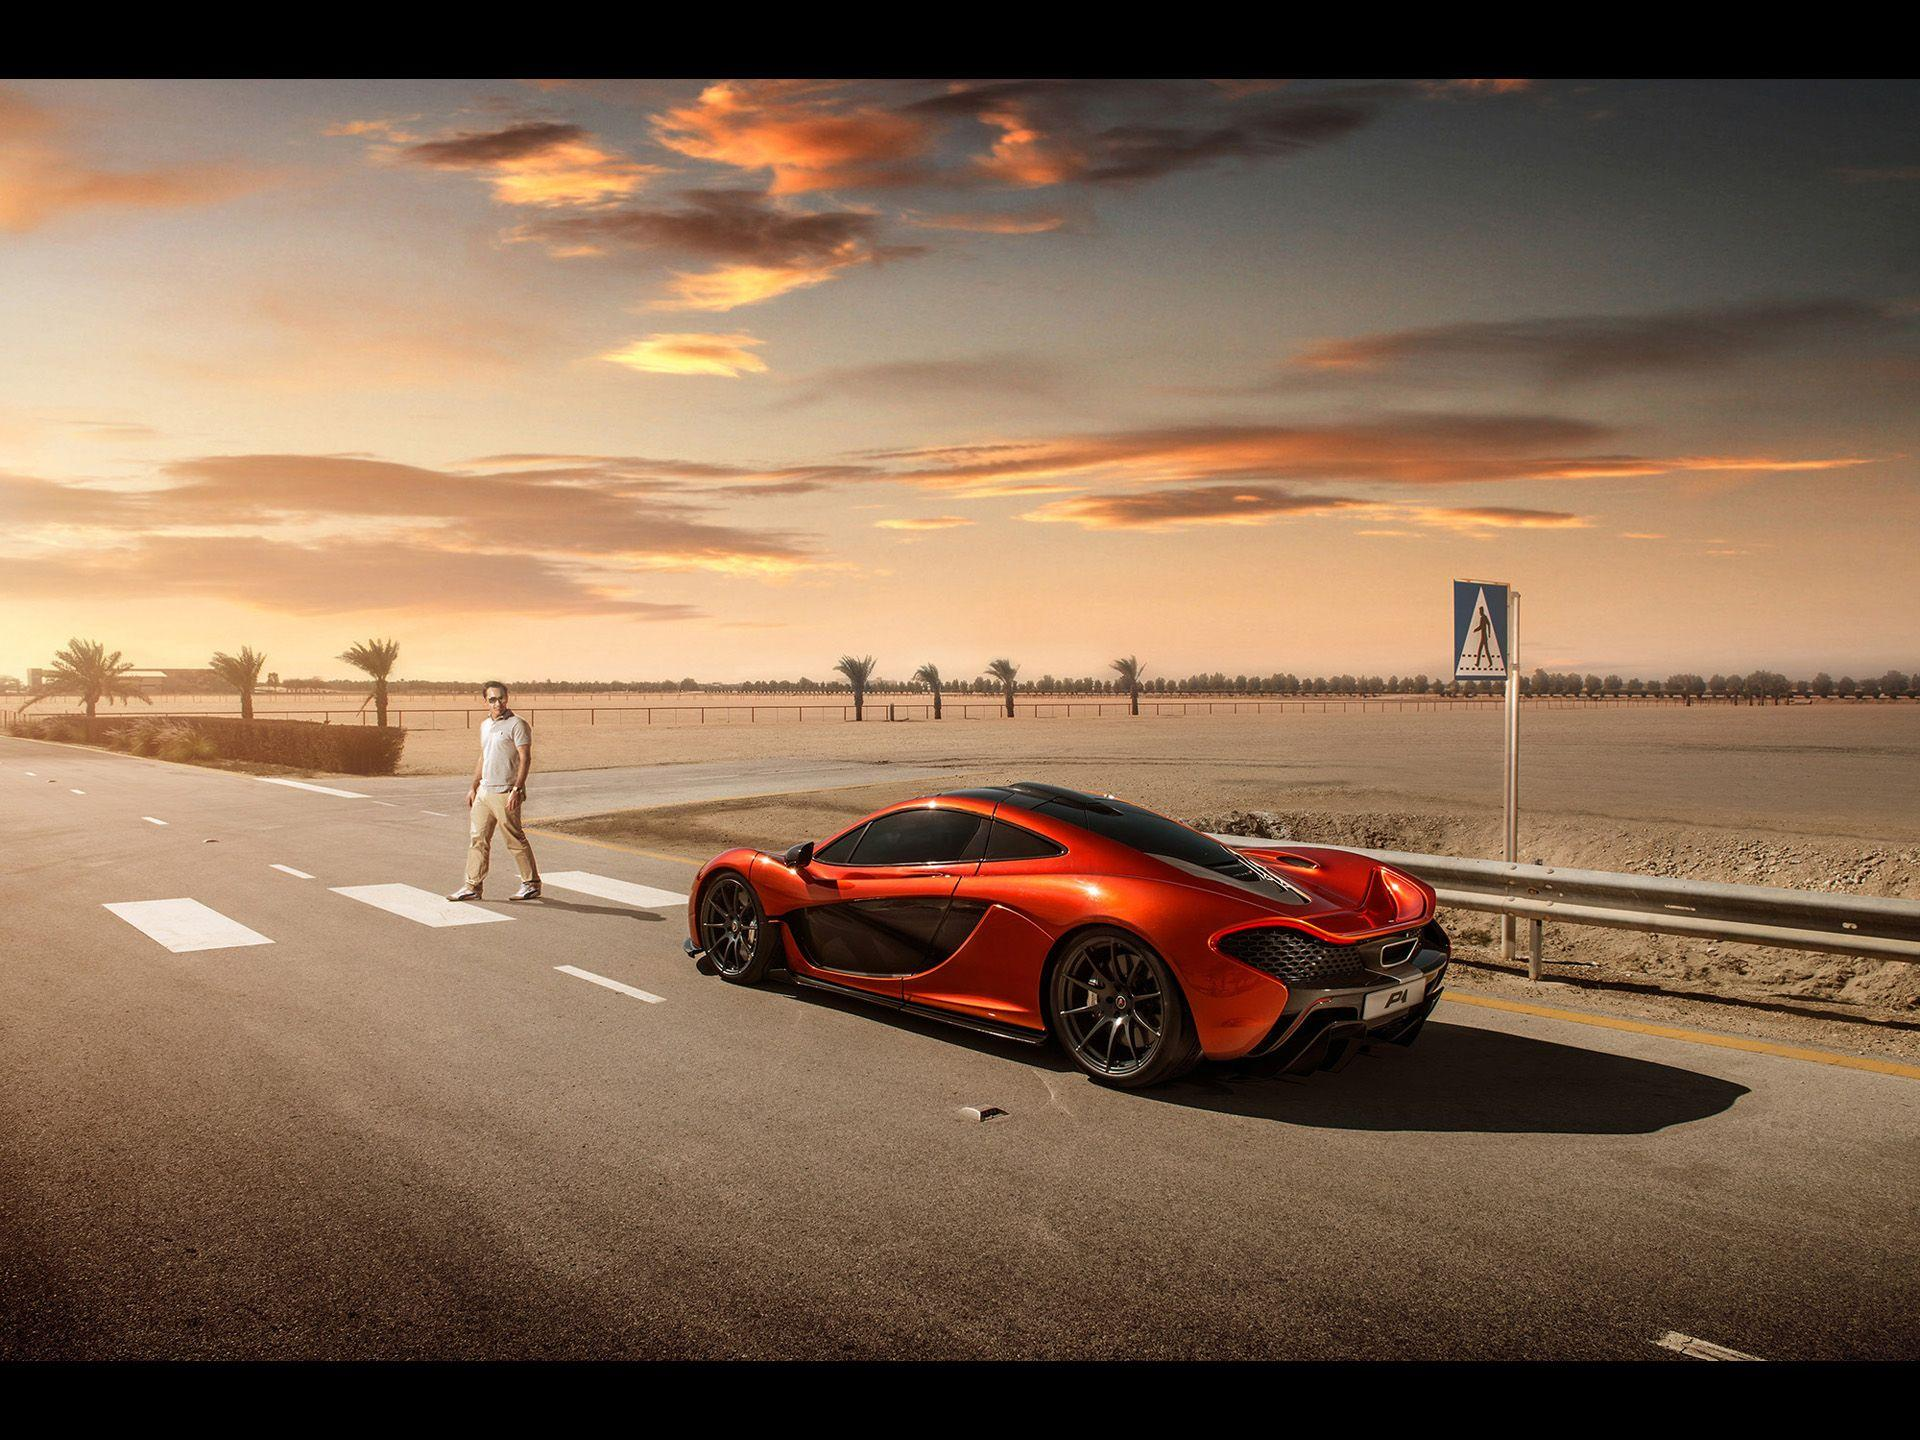 2013 McLaren P1 at Bahrain Static Side Top Angle wallpapers | 2013 ...